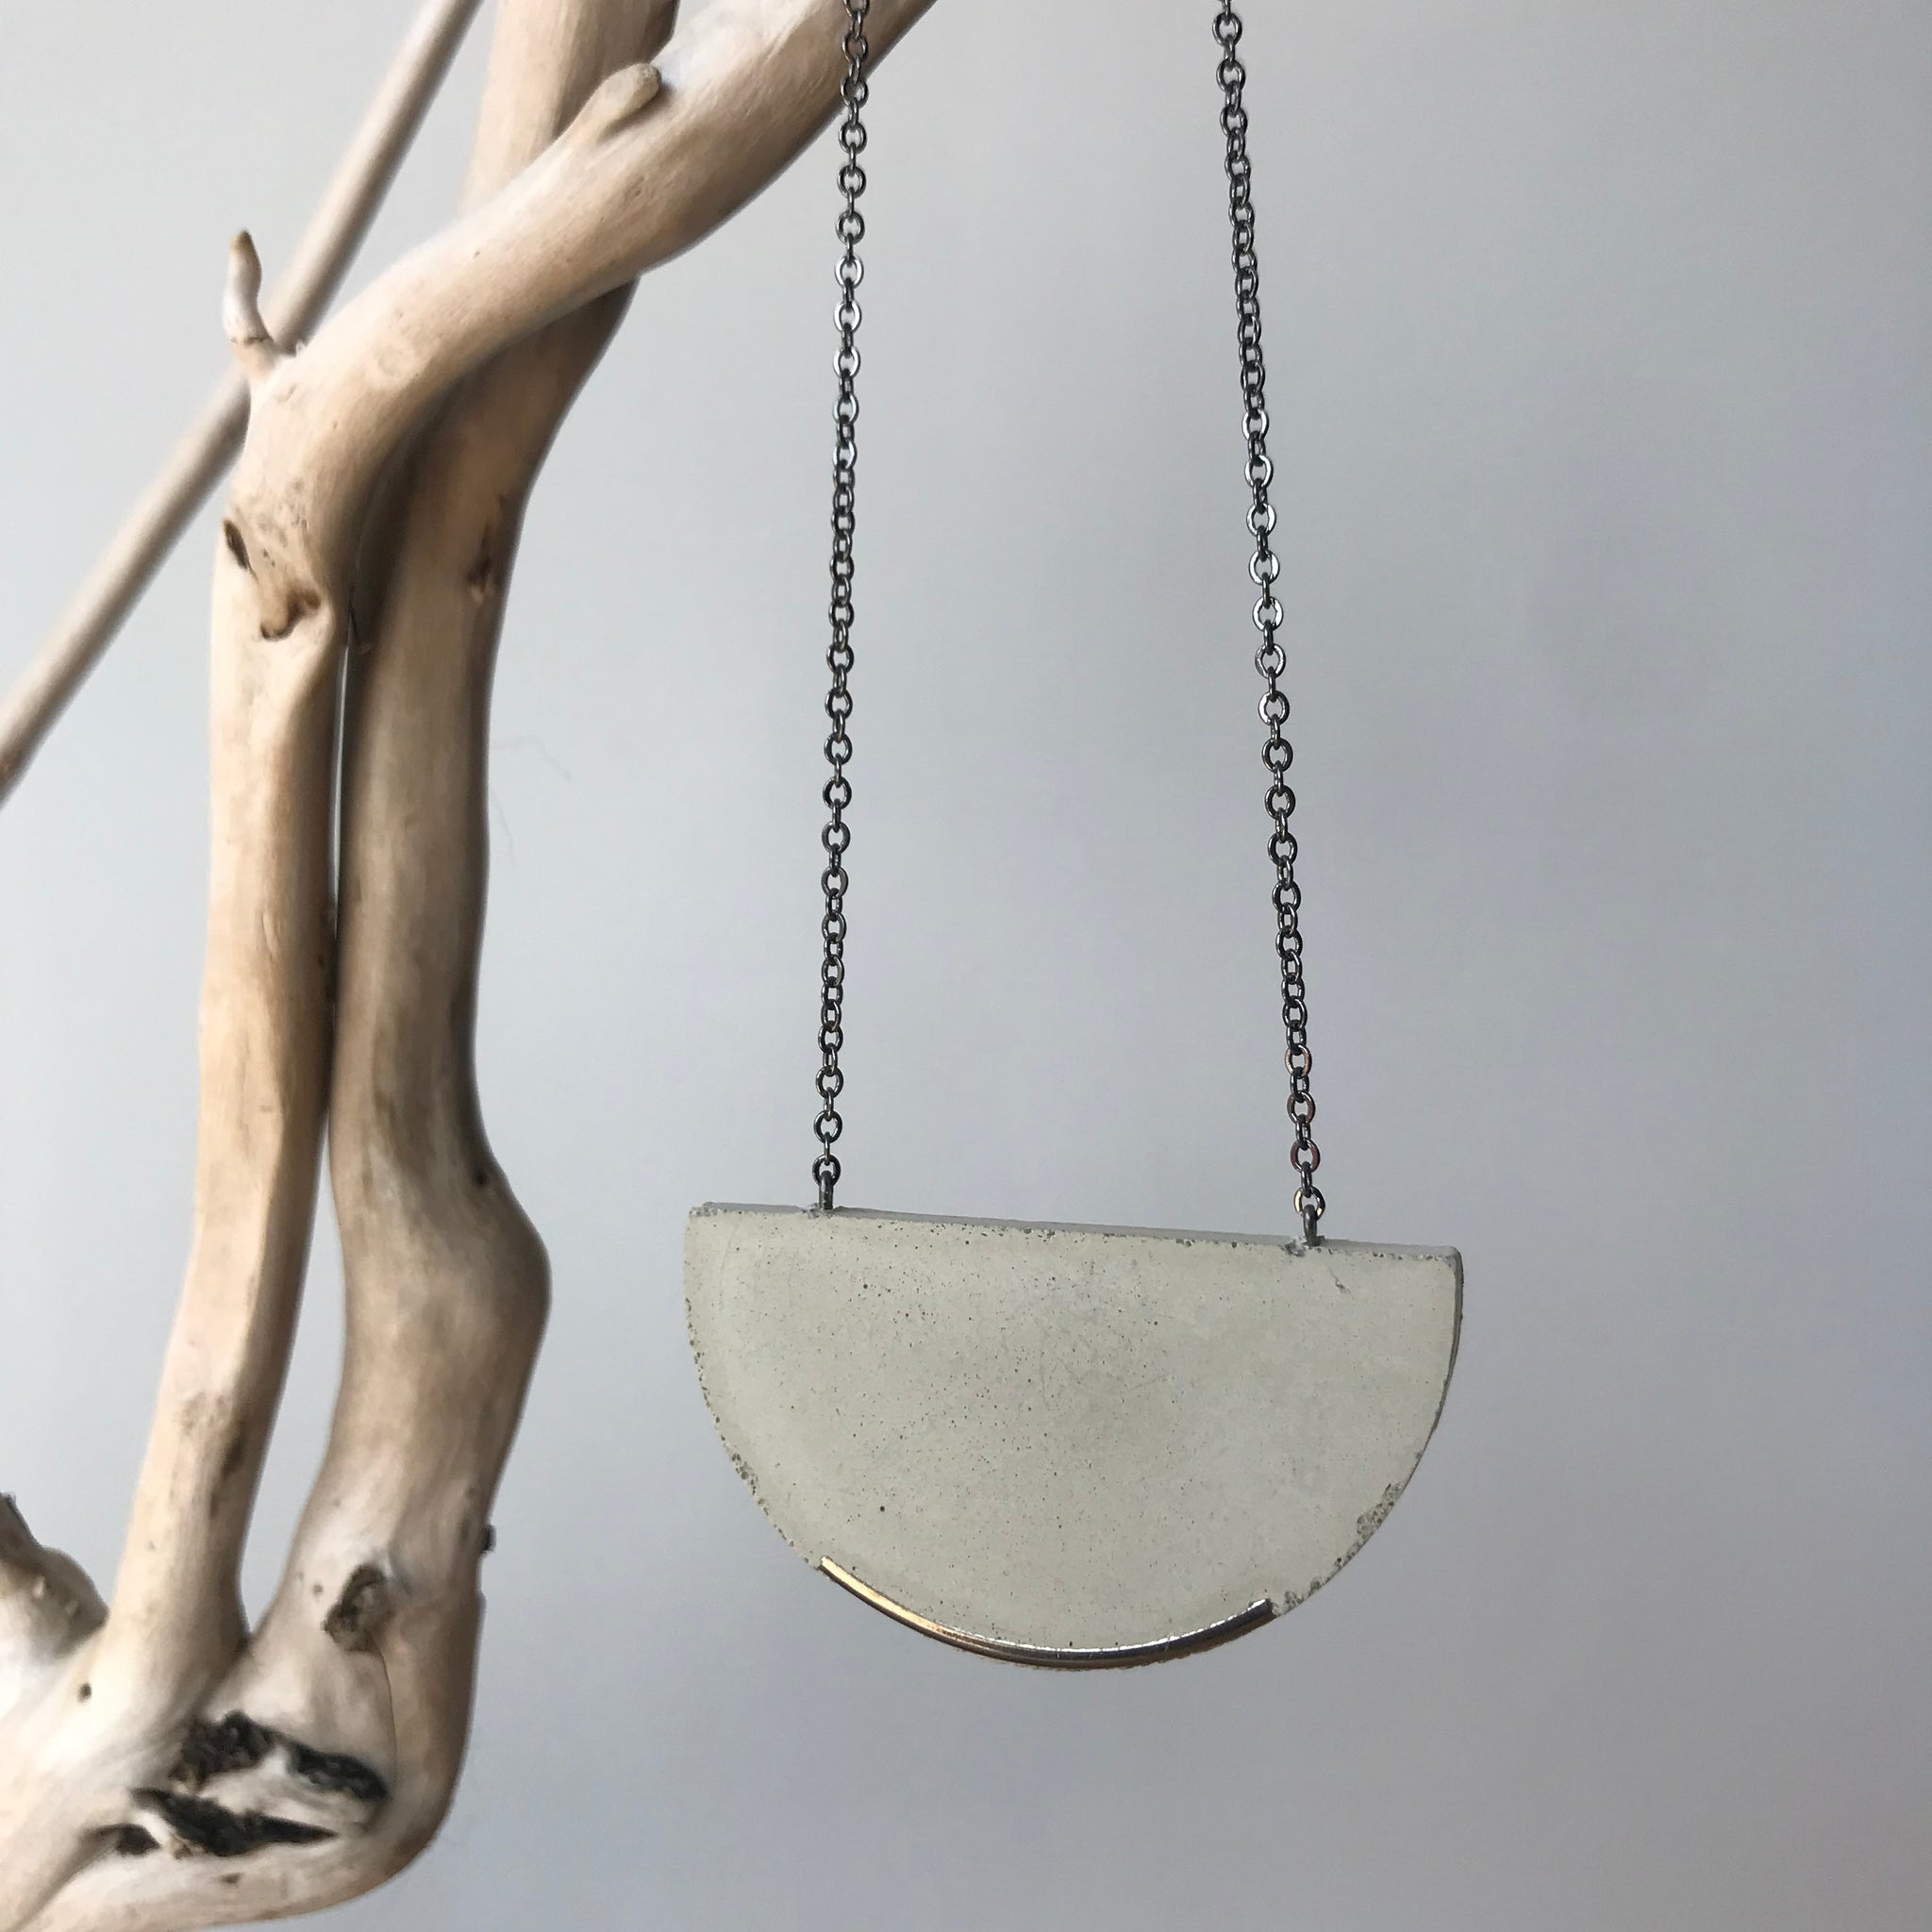 Concrete Half Moon Necklace with Embedded Silver Edge by Koonyai Studio - Upstate MN